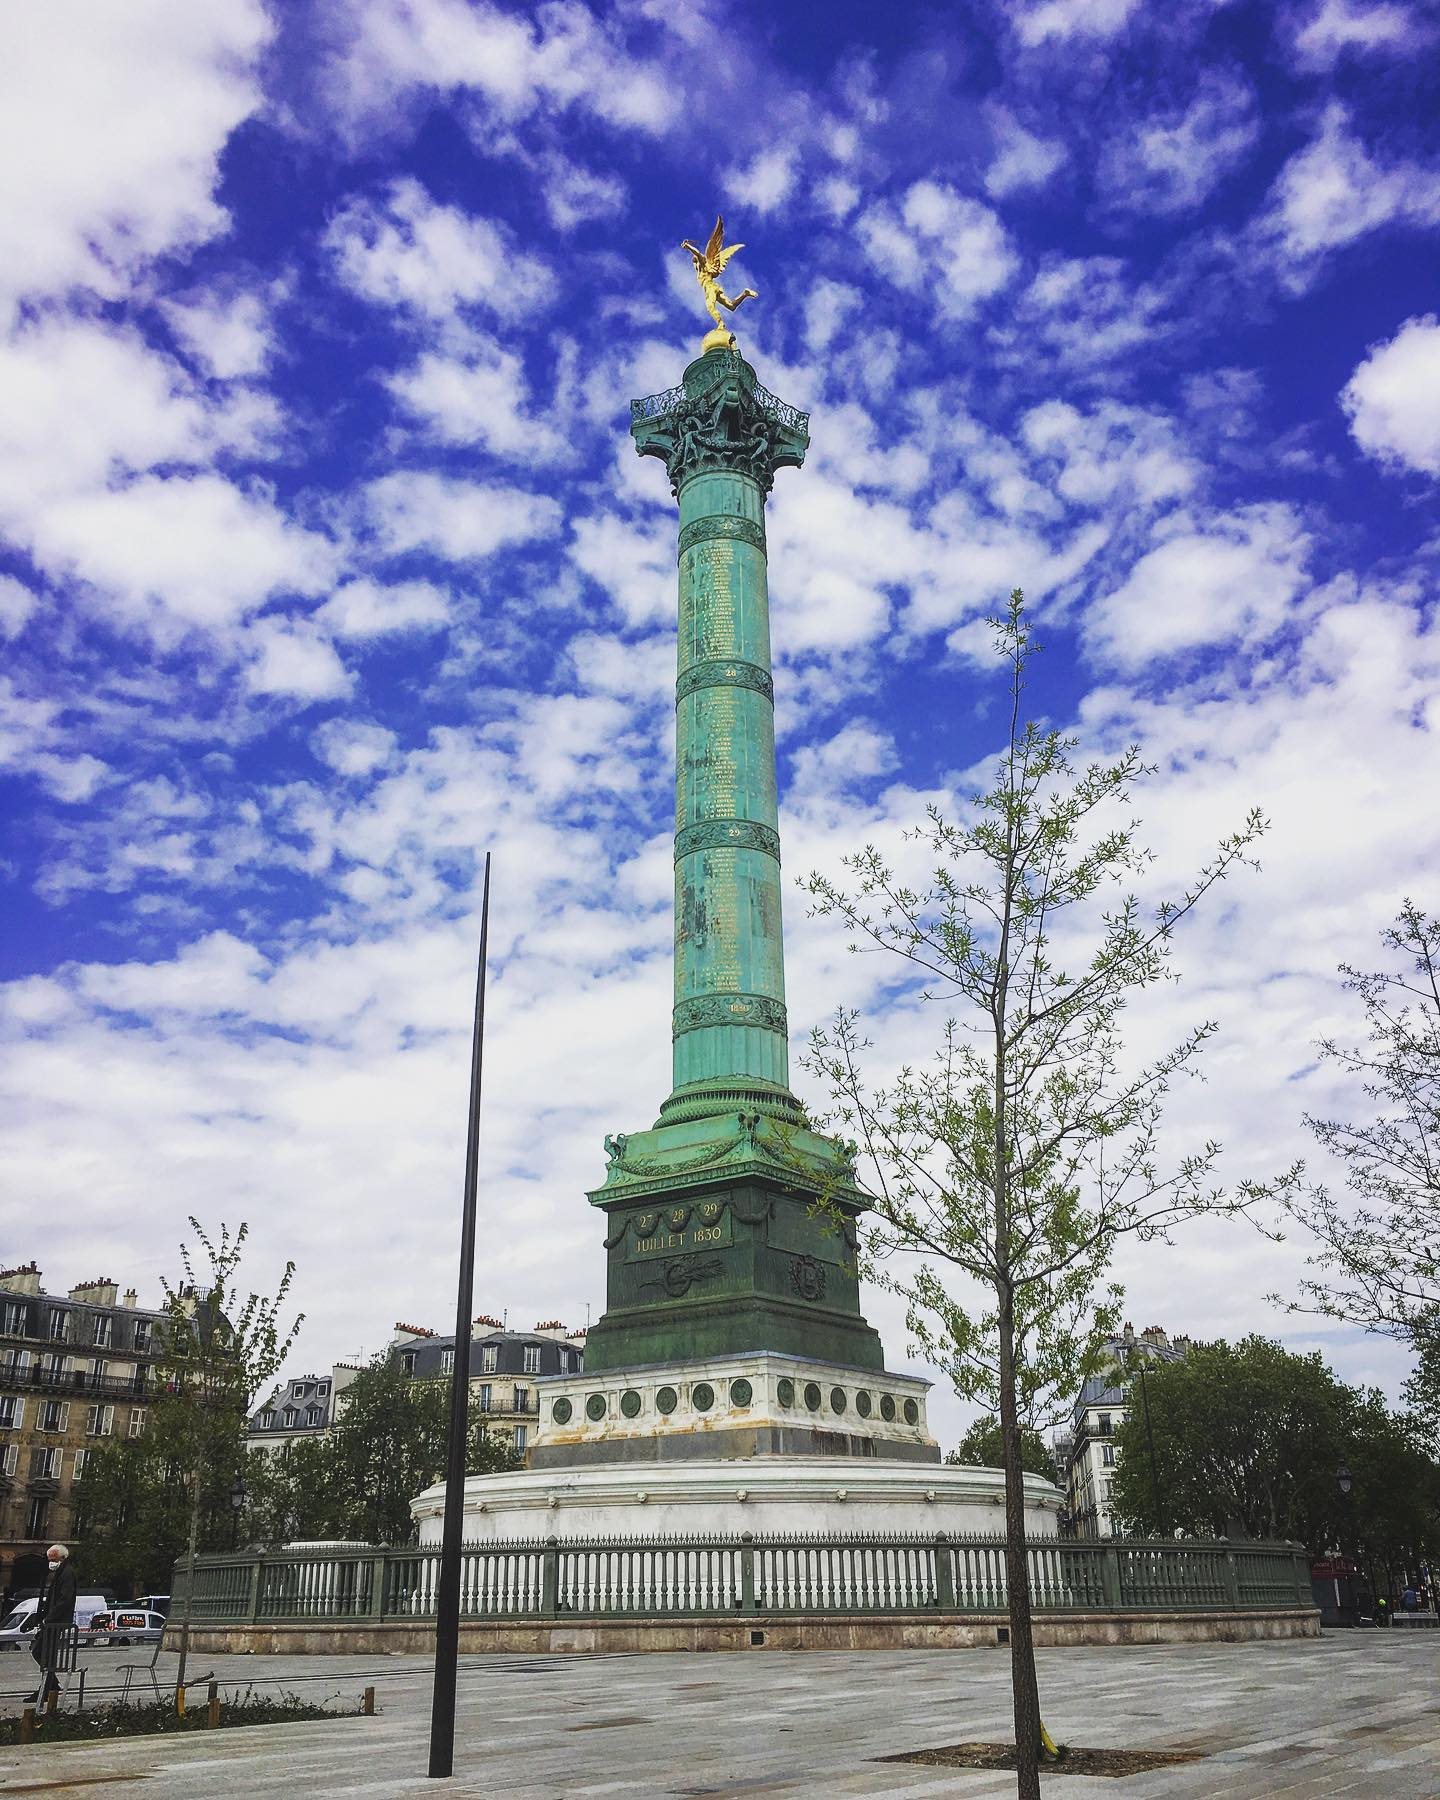 The Bastille monument with blue sky and white clouds